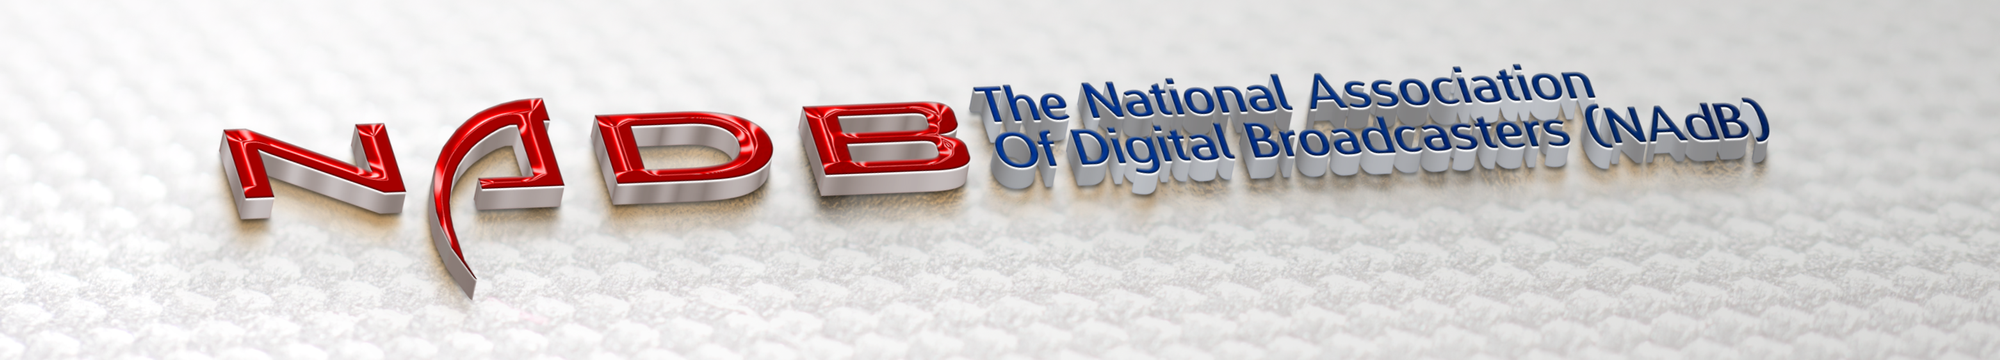 National Association of Digital Broadcasters Logo